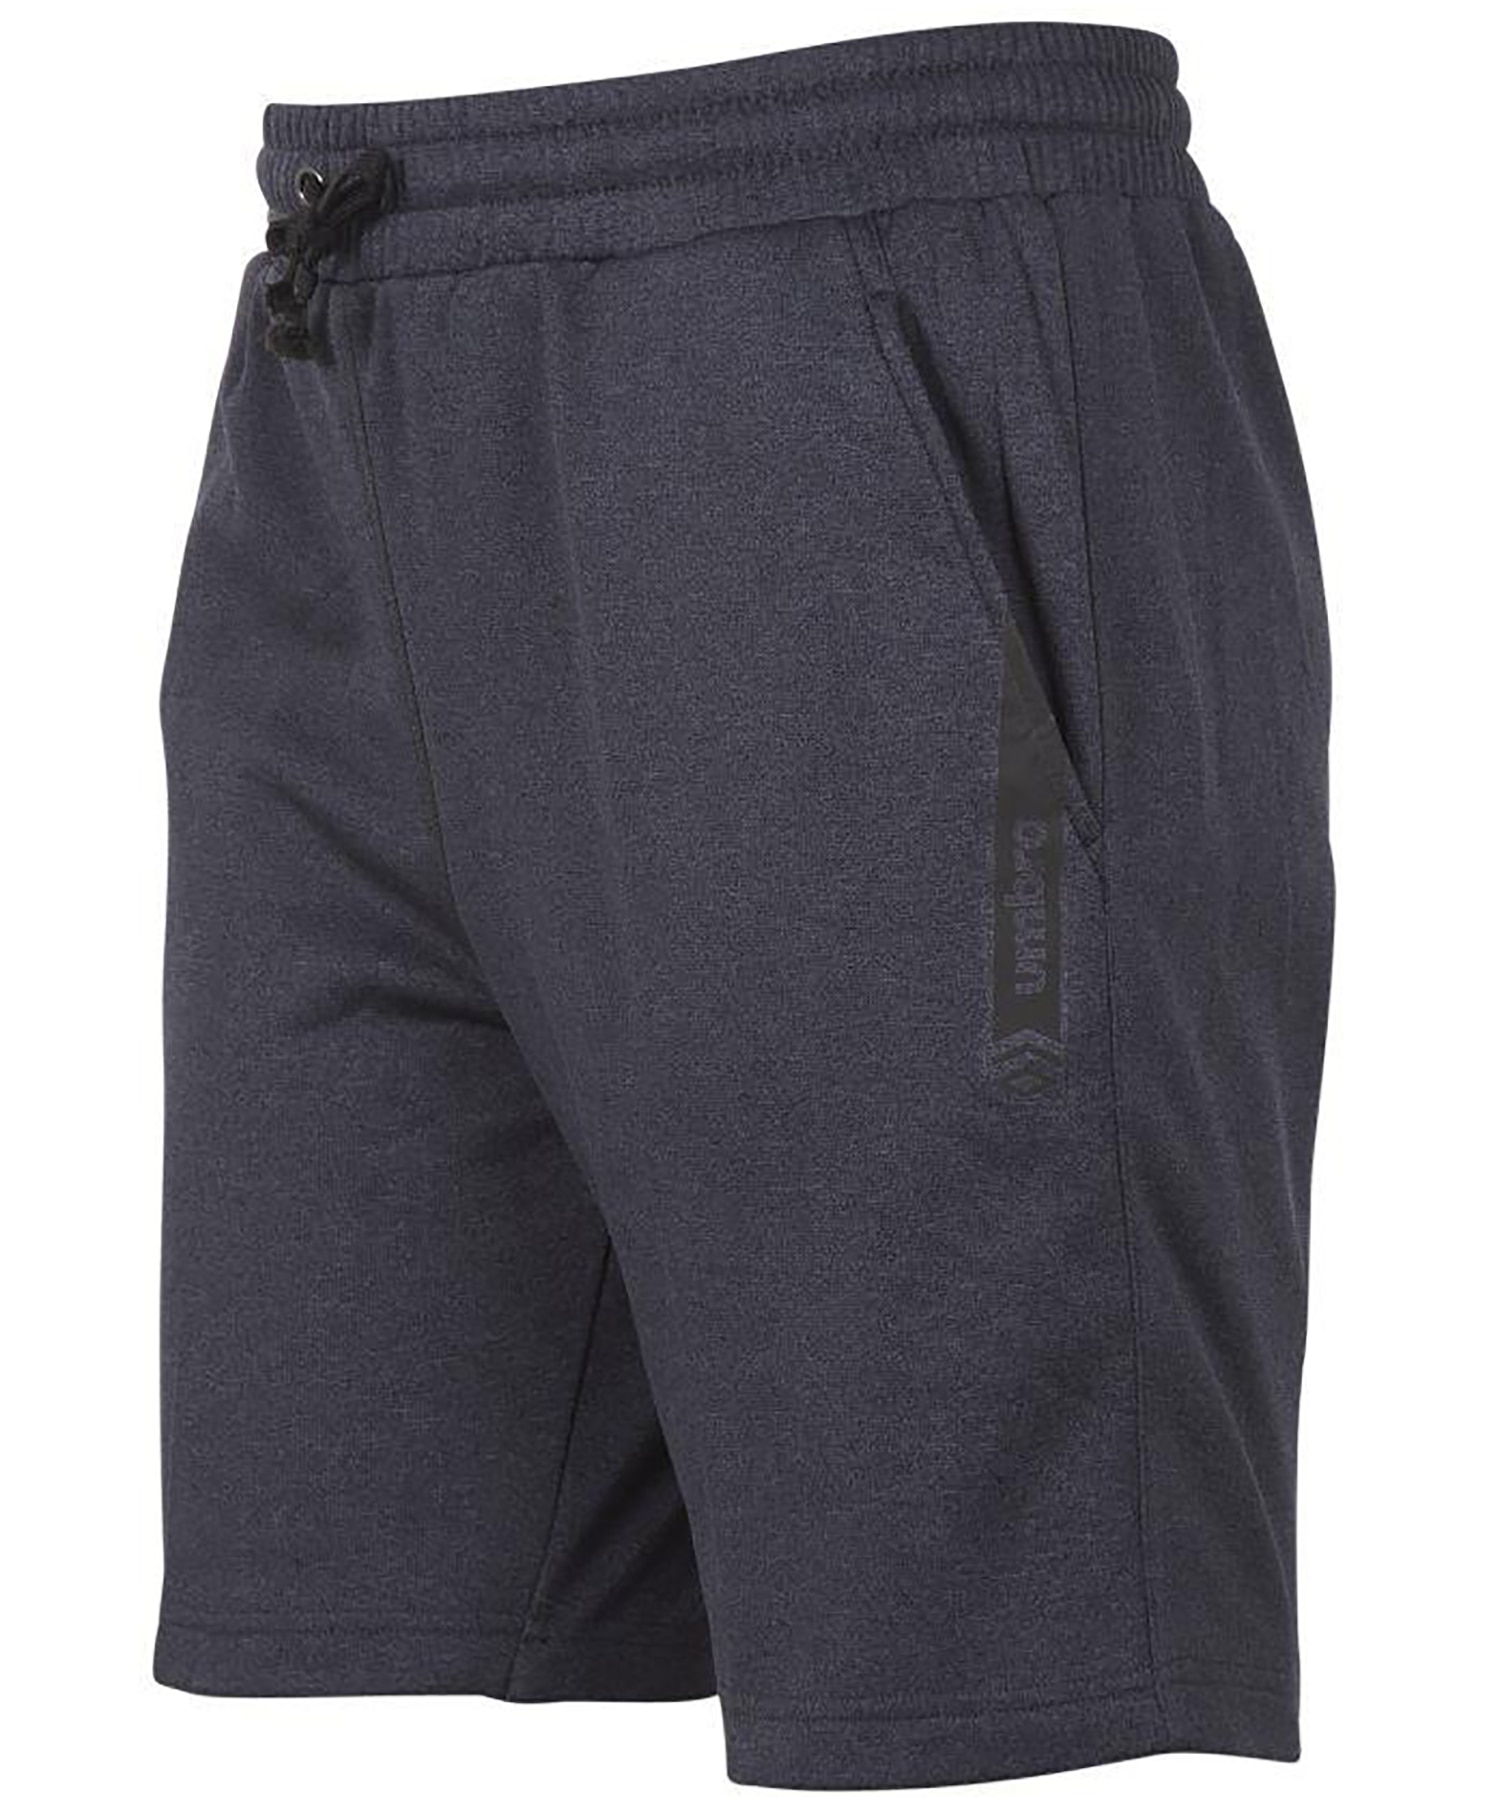 Umbro Core Tech Shorts